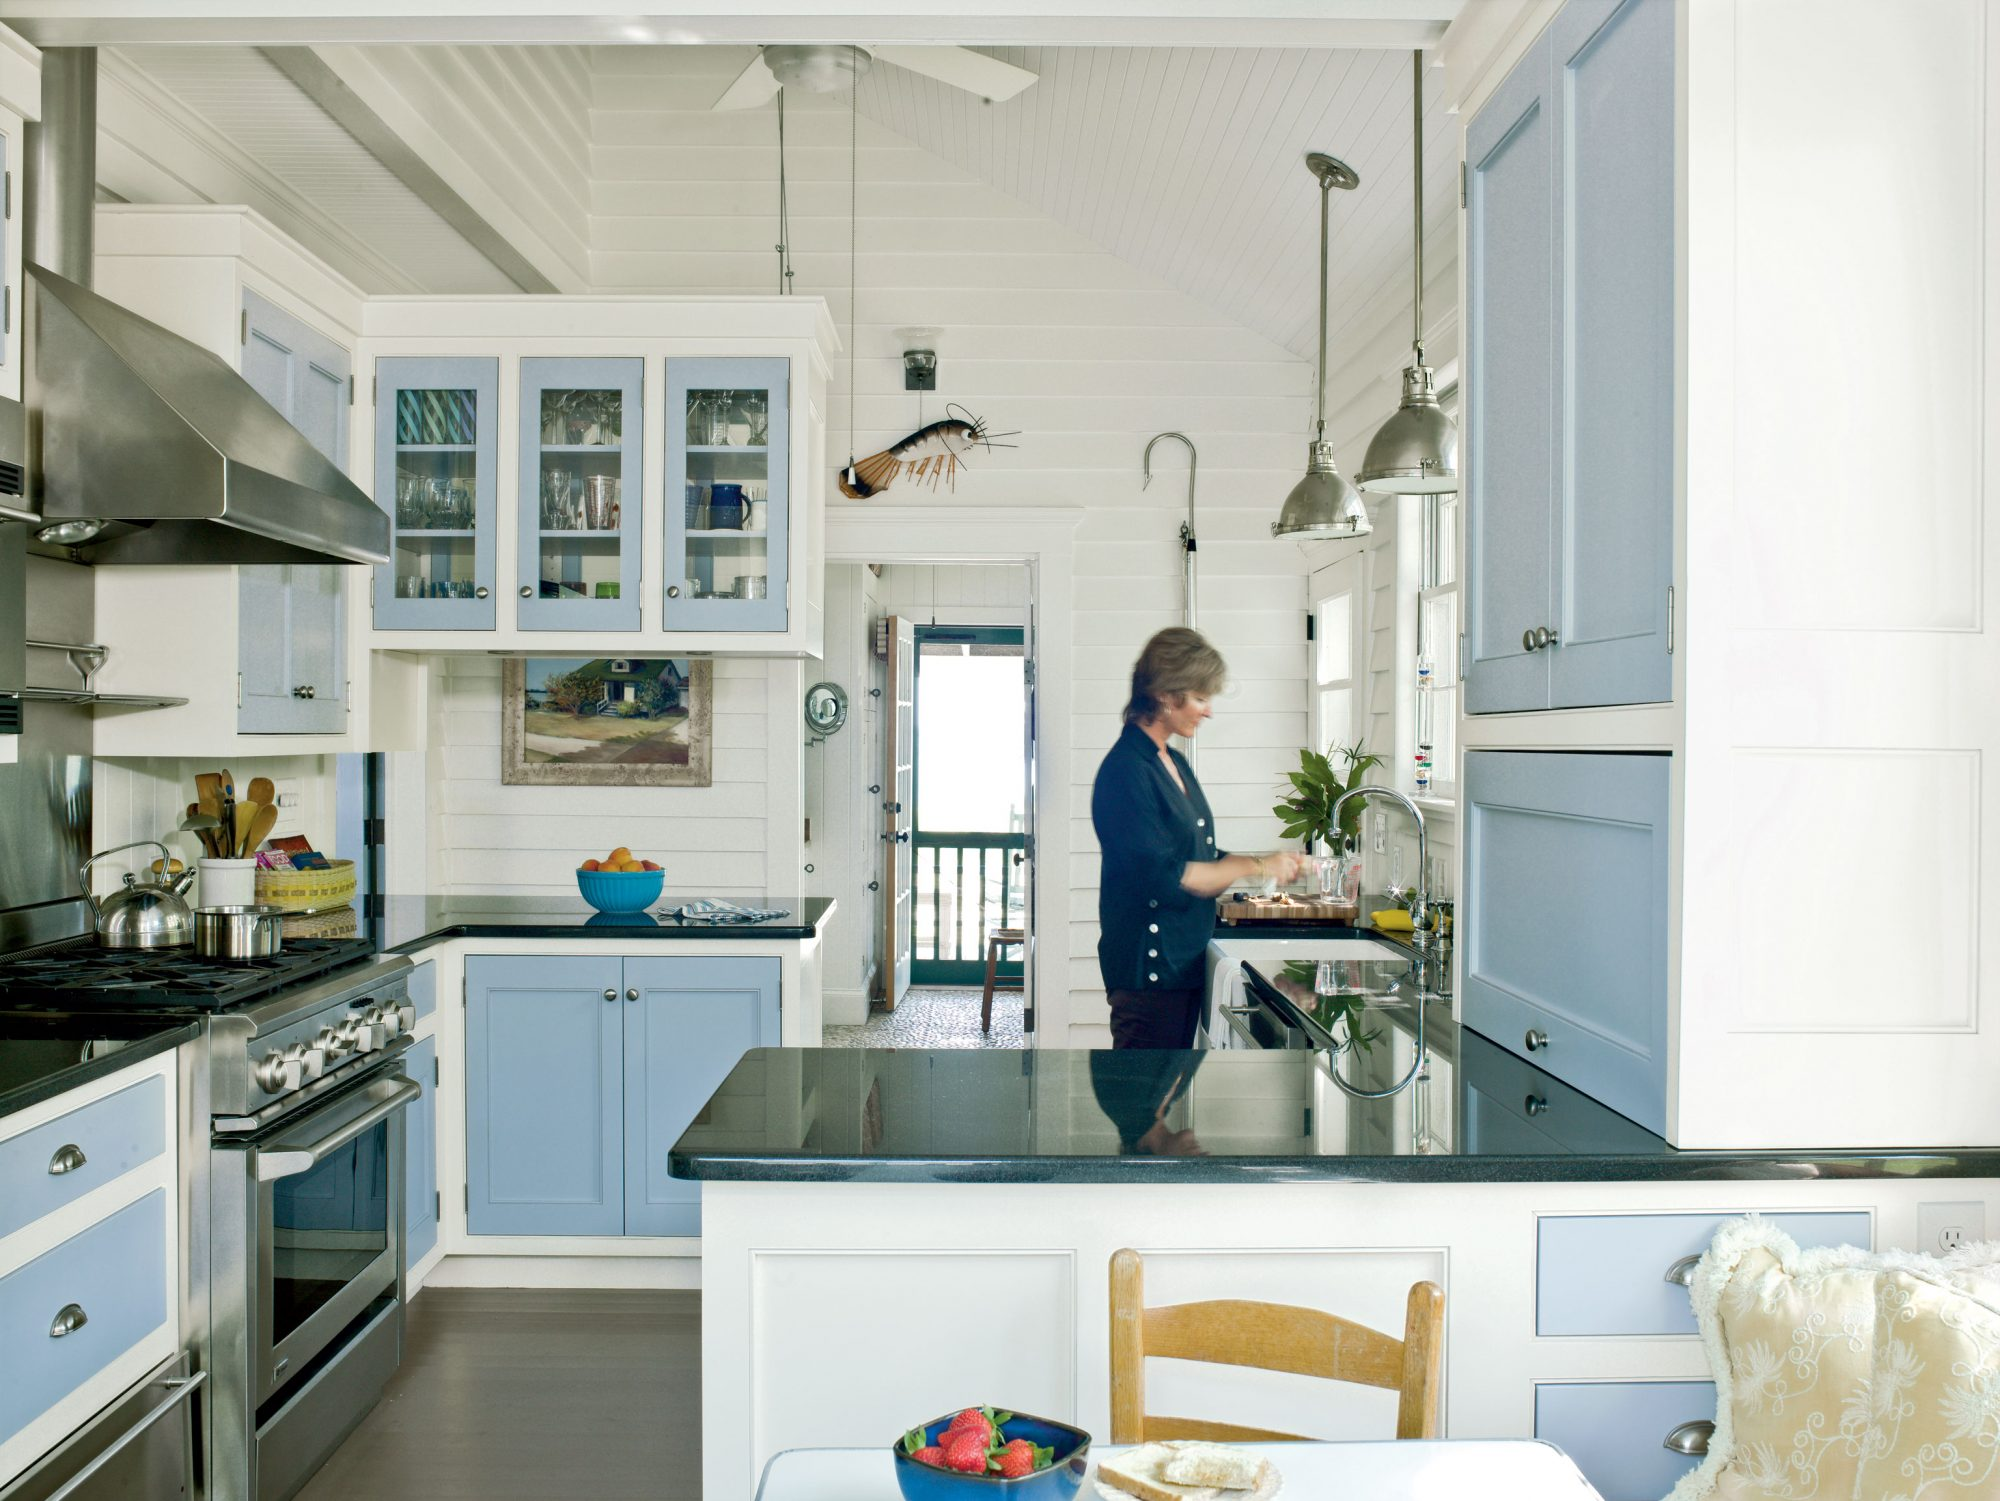 This galley kitchen is made to look larger by using the same shade of paint on the walls and ceiling. Cabinetry doors and drawers are accented in a cheery hue to keep the white kitchen from feeling sterile. Horizontal planked wood siding adds character that plain, painted drywall couldn't, and a few coastal-themed decorations, such as the marine-style pendant lights and shrimp sculpture, convey a sense of place without going overboard.